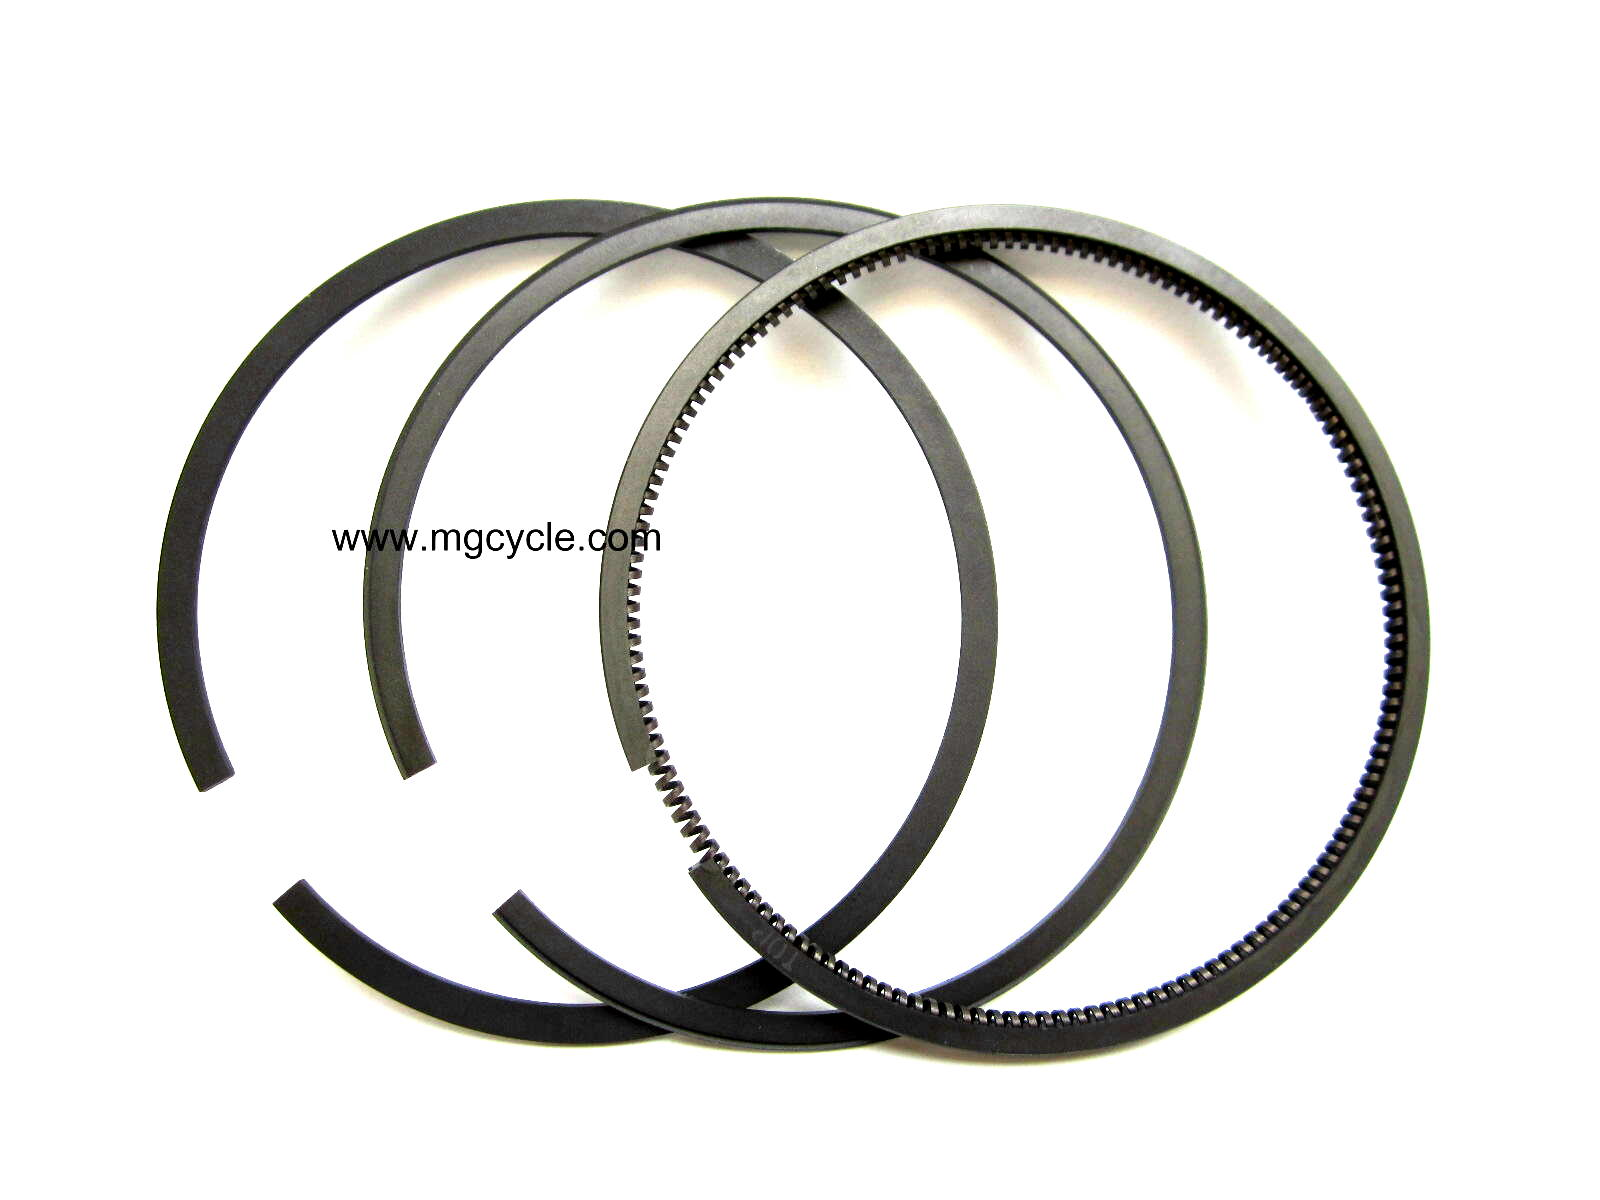 piston ring set, per piston, 83mm, for plated or iron bore